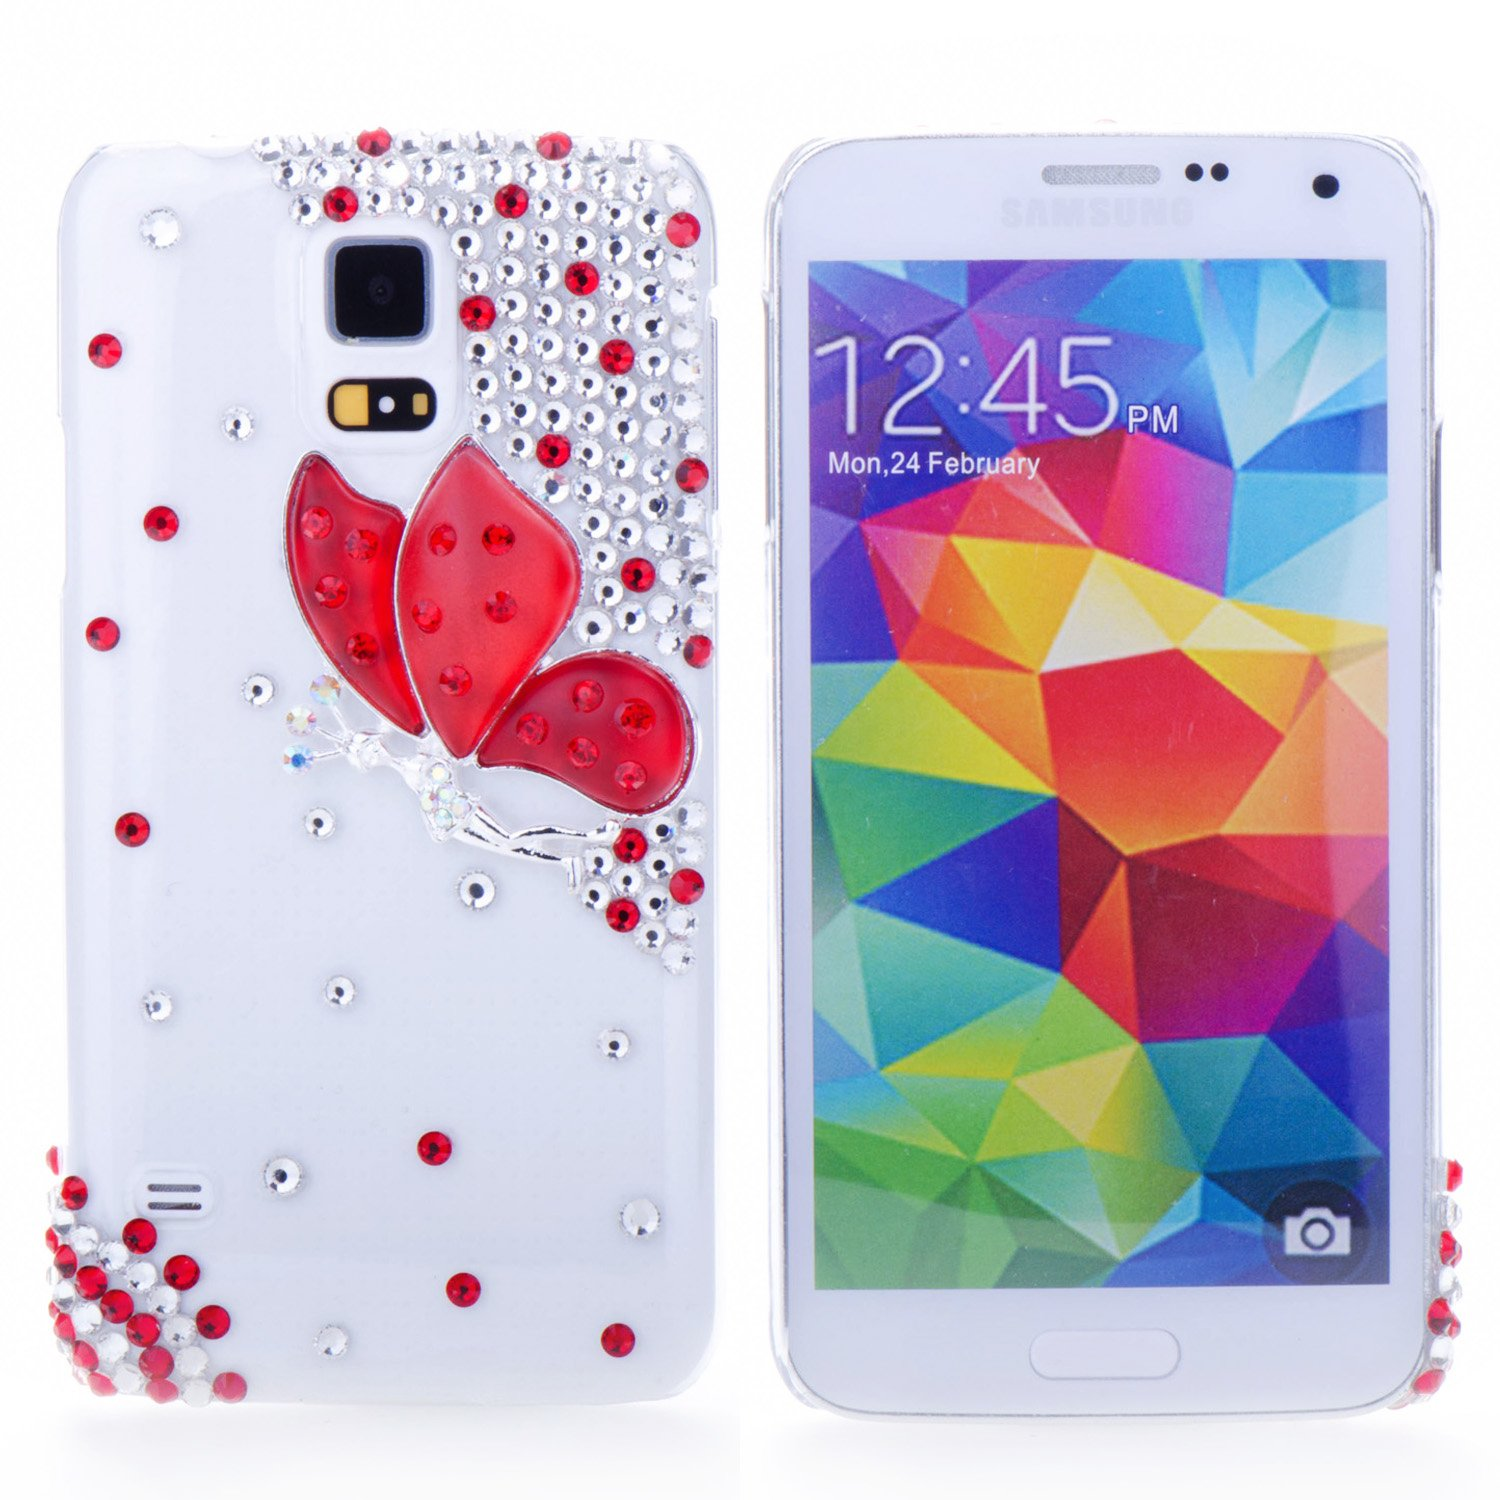 andmade Bling 3D Special Crystal Rhinestone Red Butterfly Hard Case Cover for Samsung Galaxy S5 i9600 Transparent